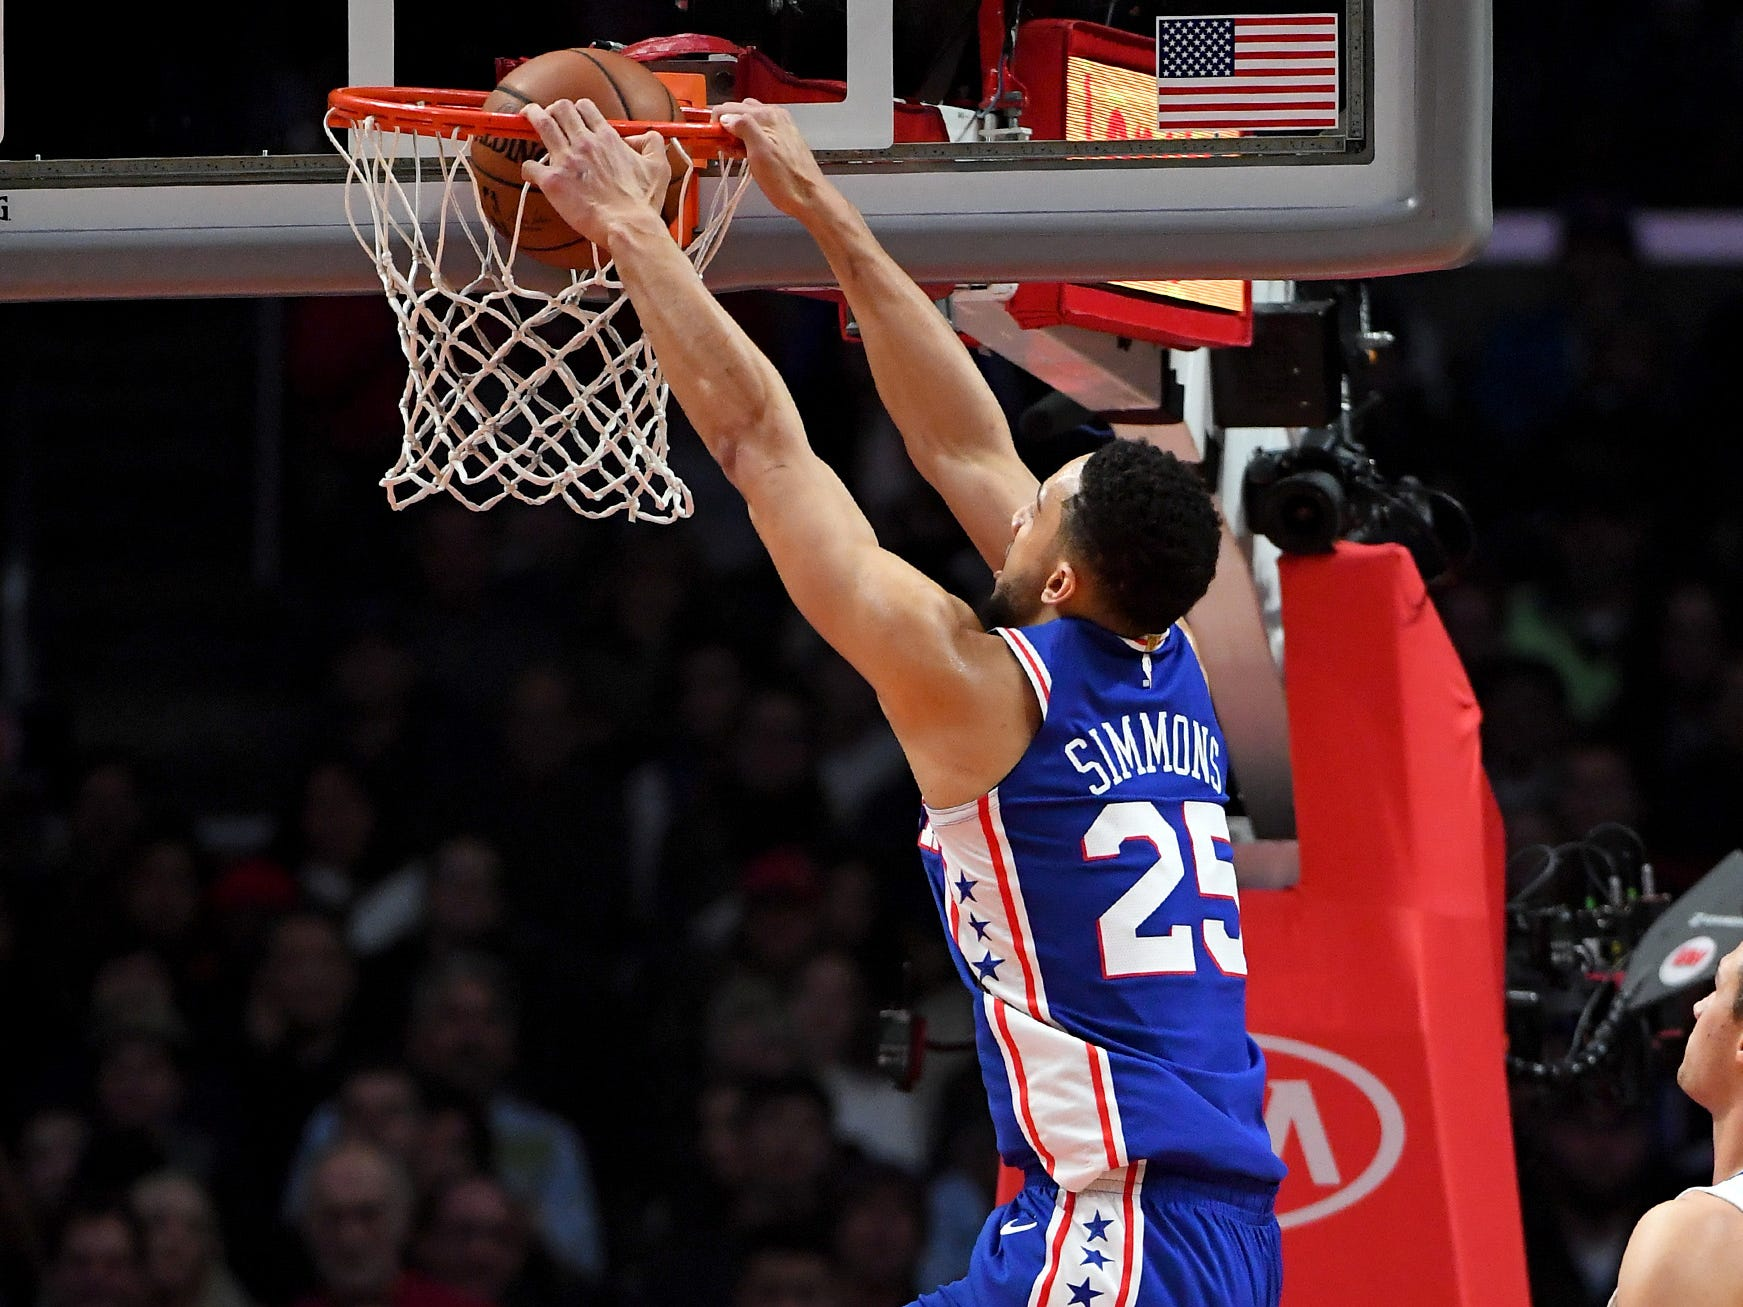 Jan. 1: Philadelphia 76ers guard Ben Simmons dunks in the first quarter against the Los Angeles Clippers at Staples Center.